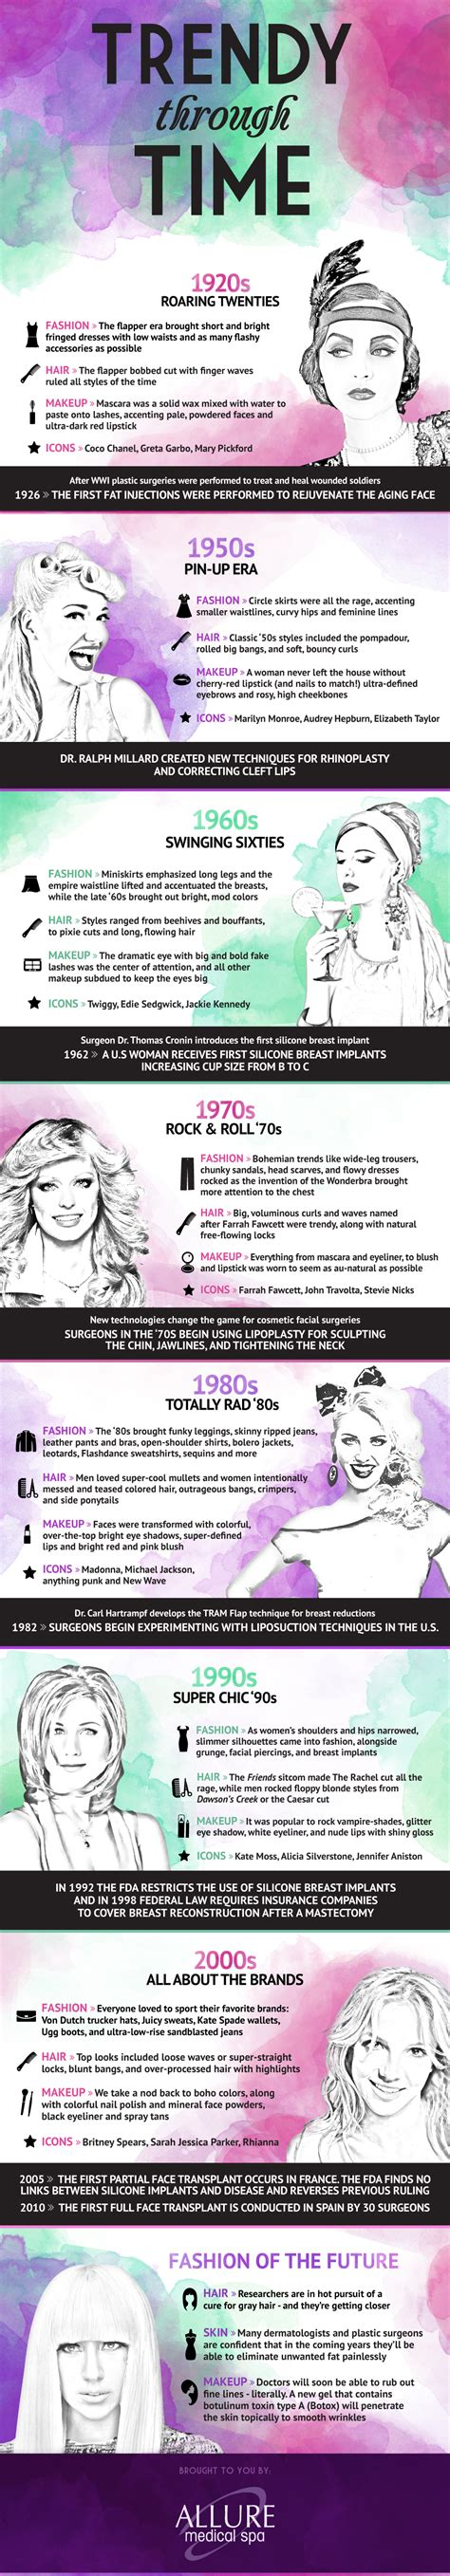 history of hari cuts in malaysia women s makeup throughout history life style by